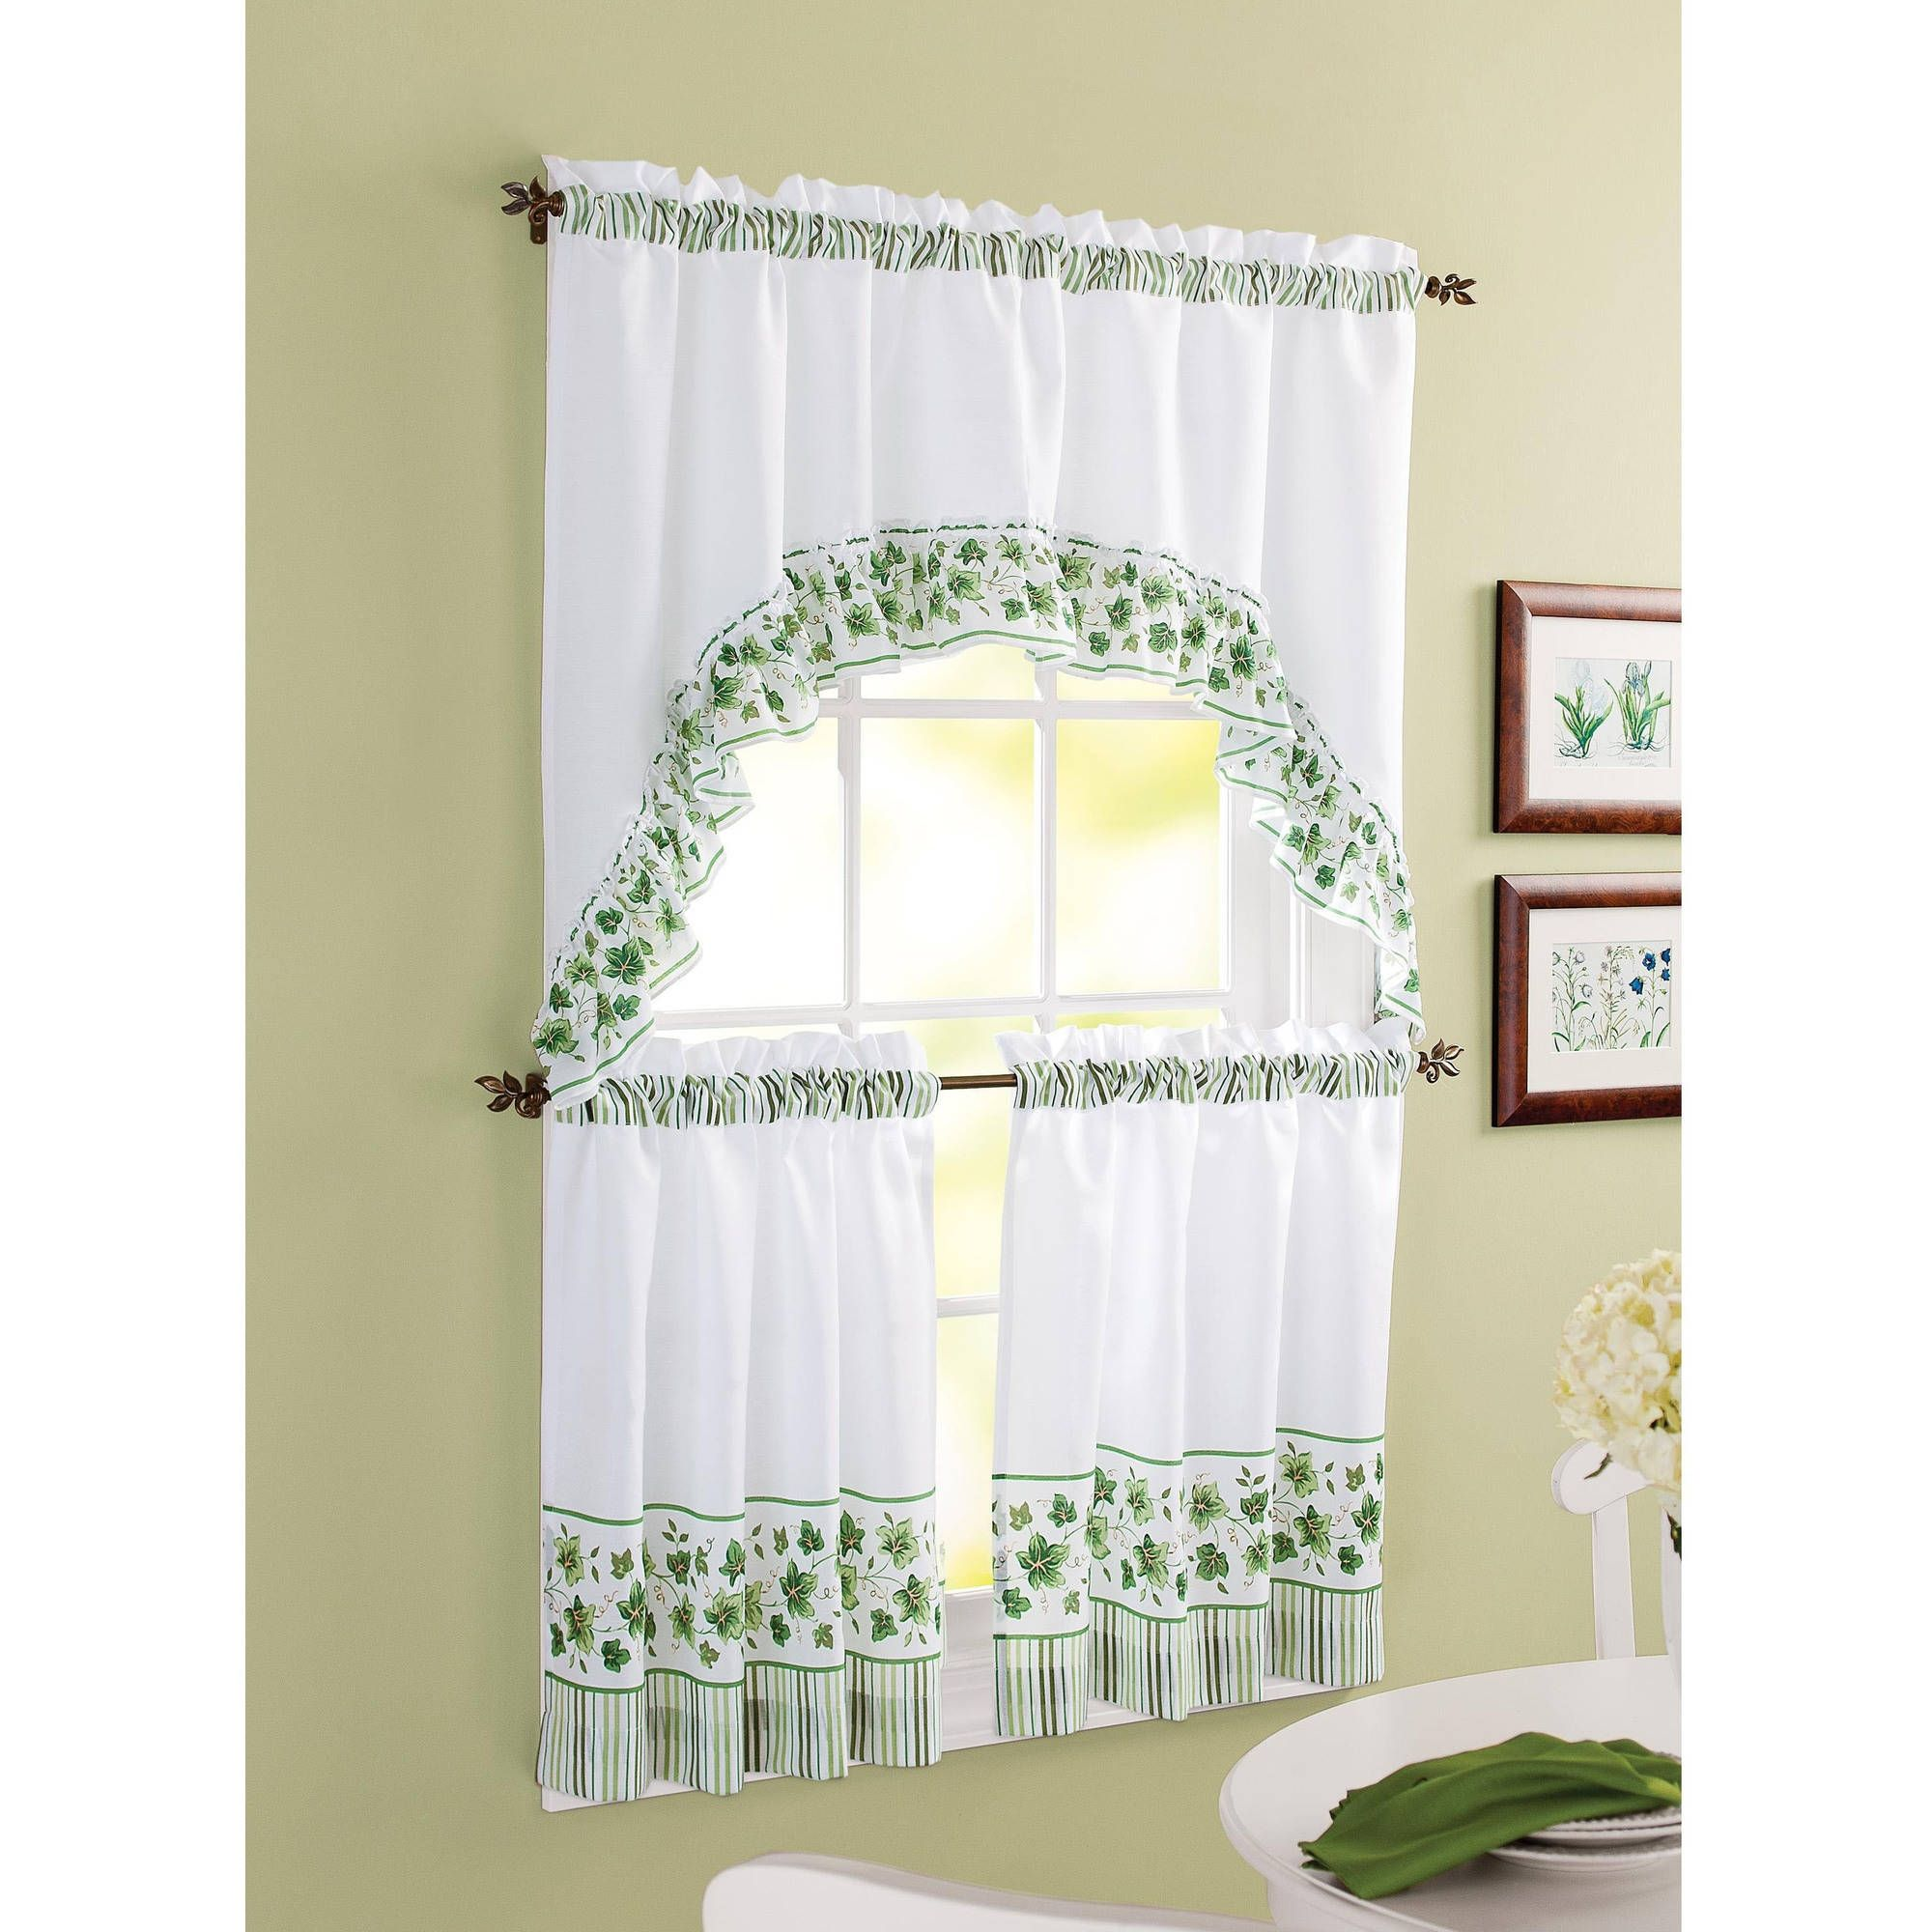 wall as bedroom drapes grommet pattern adorn for interior windows buy your medium living room light yellow go plus and images curtain what drawing best blue walls full white well inch ideas color fabulous to curtains aqua of patterned navy online size green with together where floral revit